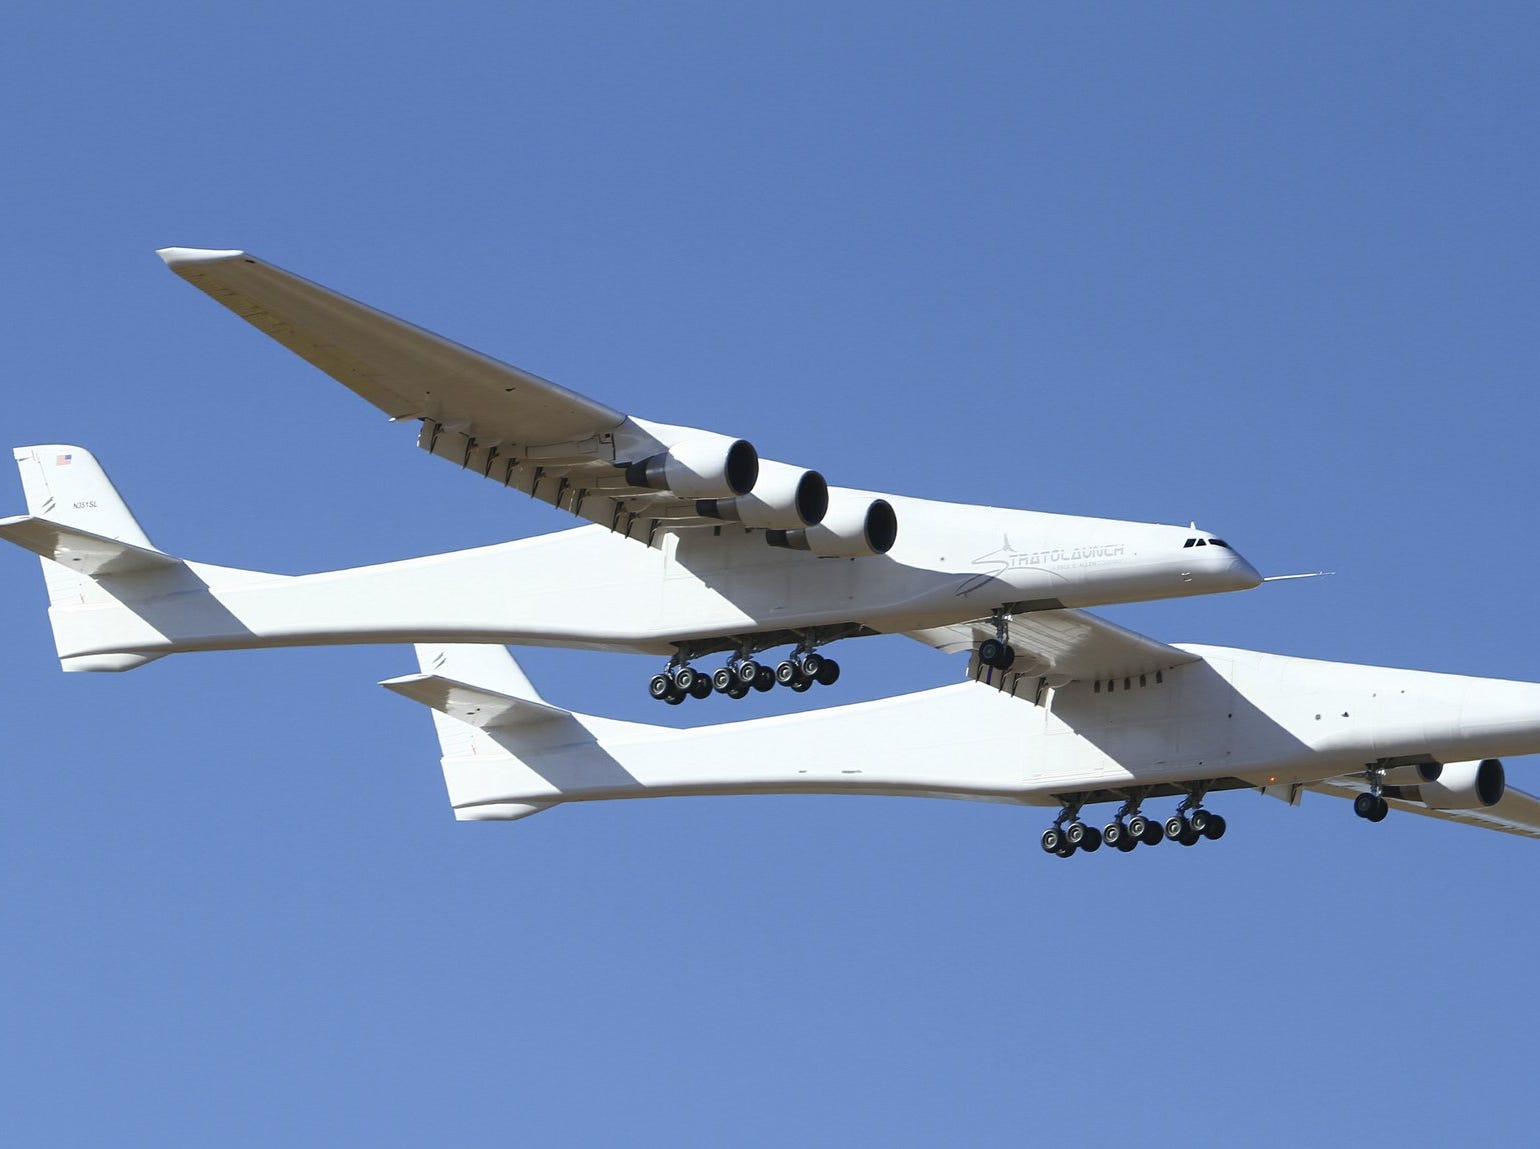 Stratolaunch, a giant six-engine aircraft with the world's longest wingspan , makes its historic first flight from the Mojave Air and Space Port in Mojave, Calif., Saturday, April 13, 2019. Founded by the late billionaire Paul G. Allen, Stratolaunch is vying to be a contender in the market for air-launching small satellites.